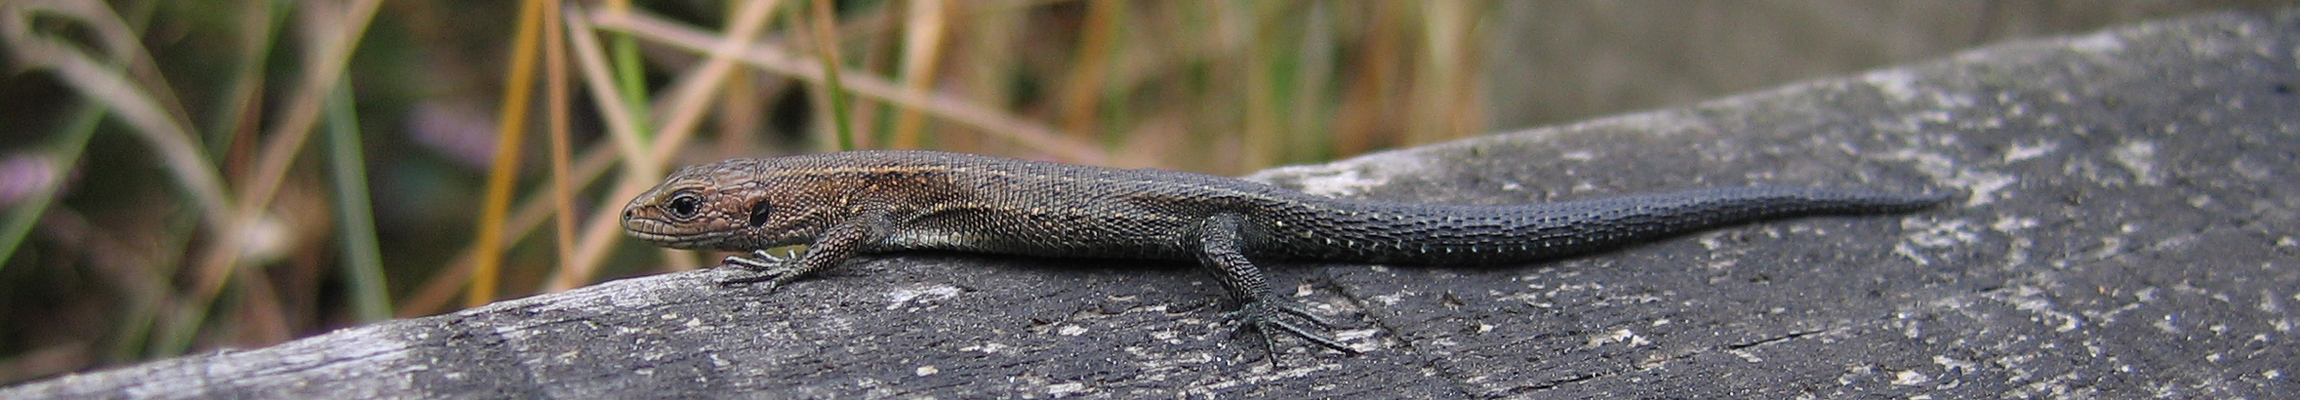 common lizard  2